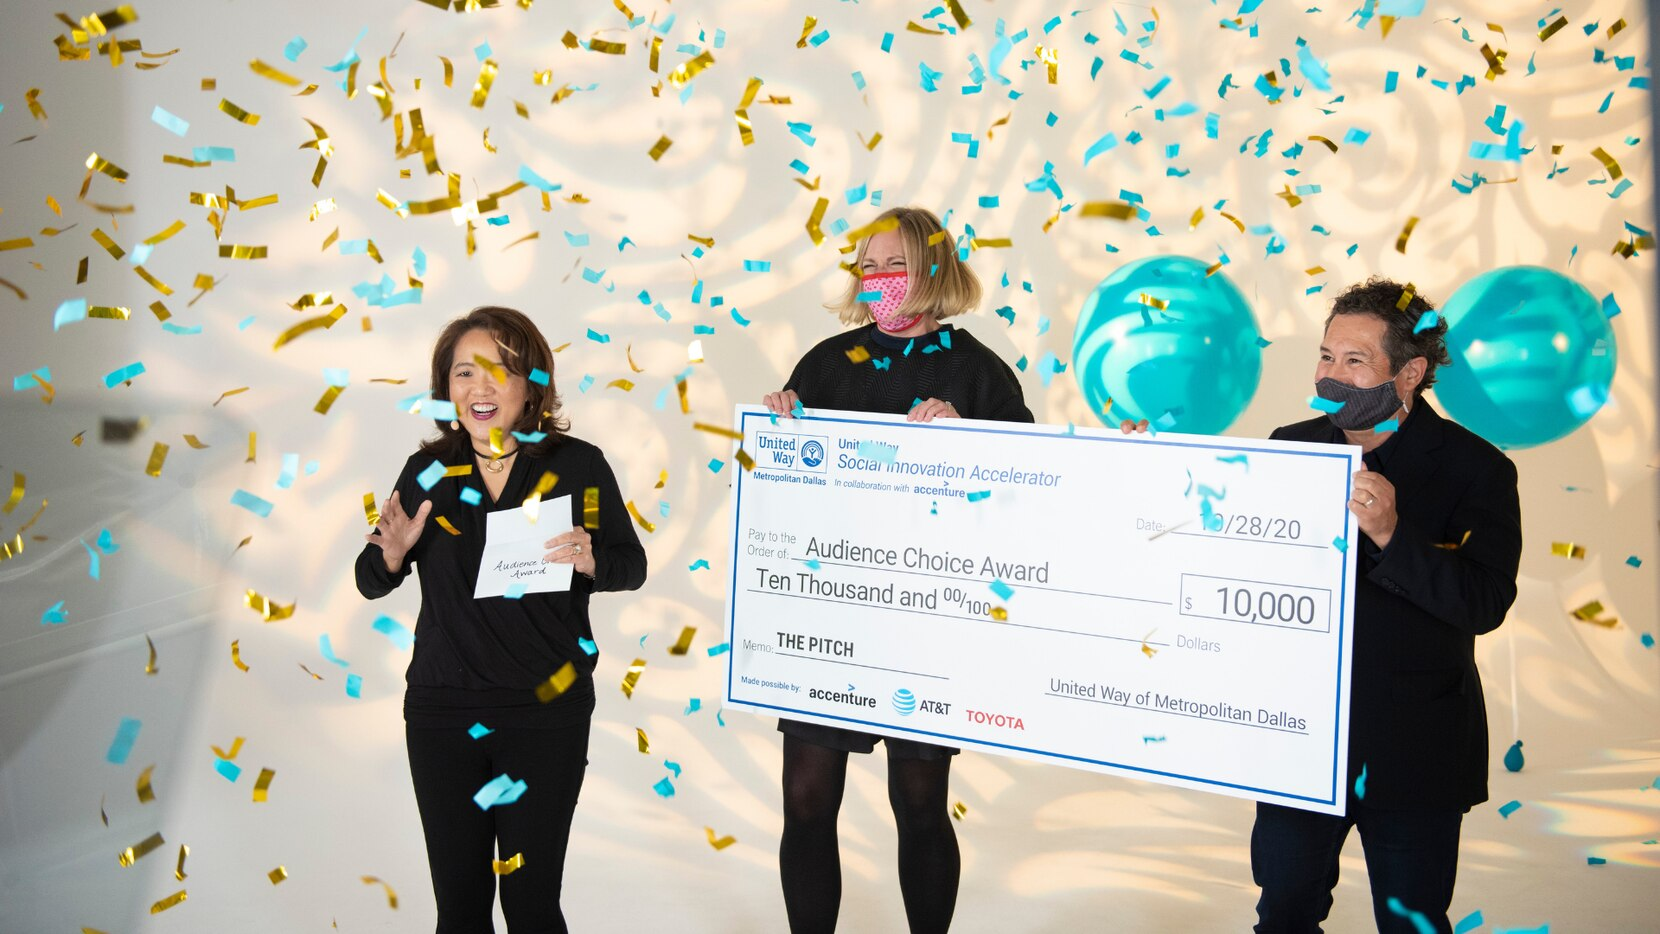 Anne Chow, Jennifer Sampson and Jorge Corral presenting the Audience Choice Award at 'The Pitch', the culminating event for the United Way Social Innovation Accelerator in collaboration with Accenture.